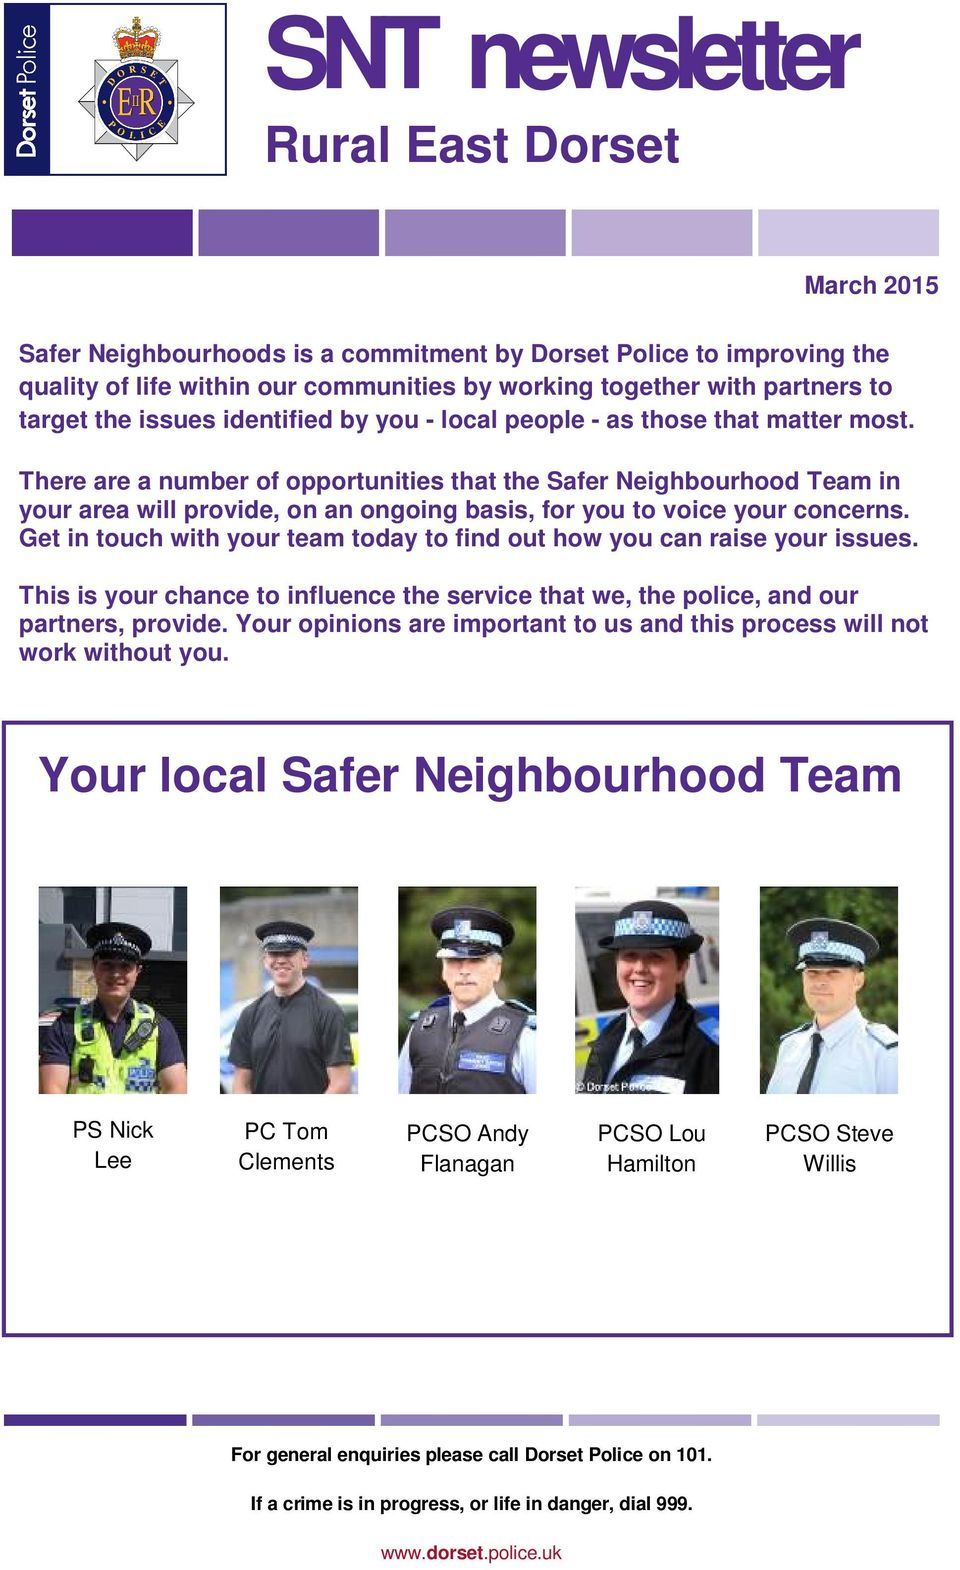 There are a number of opportunities that the Safer Neighbourhood Team in your area will provide, on an ongoing basis, for you to voice your concerns.